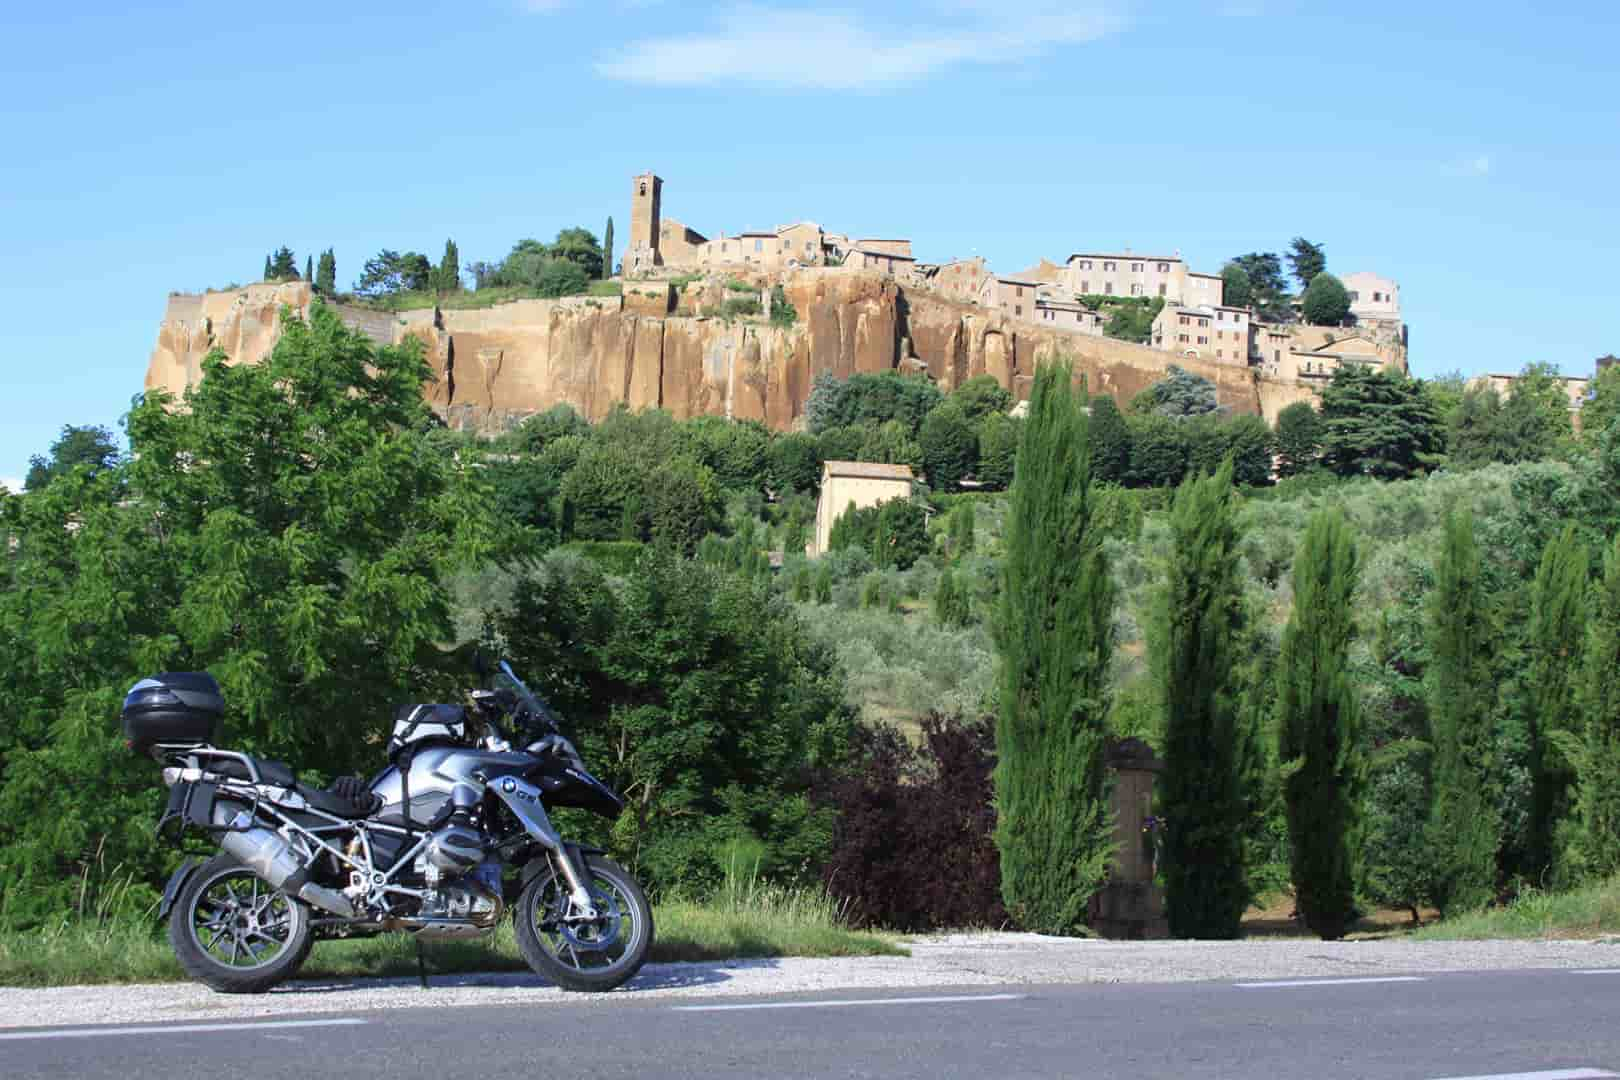 The best Italian motorcycles the top 10